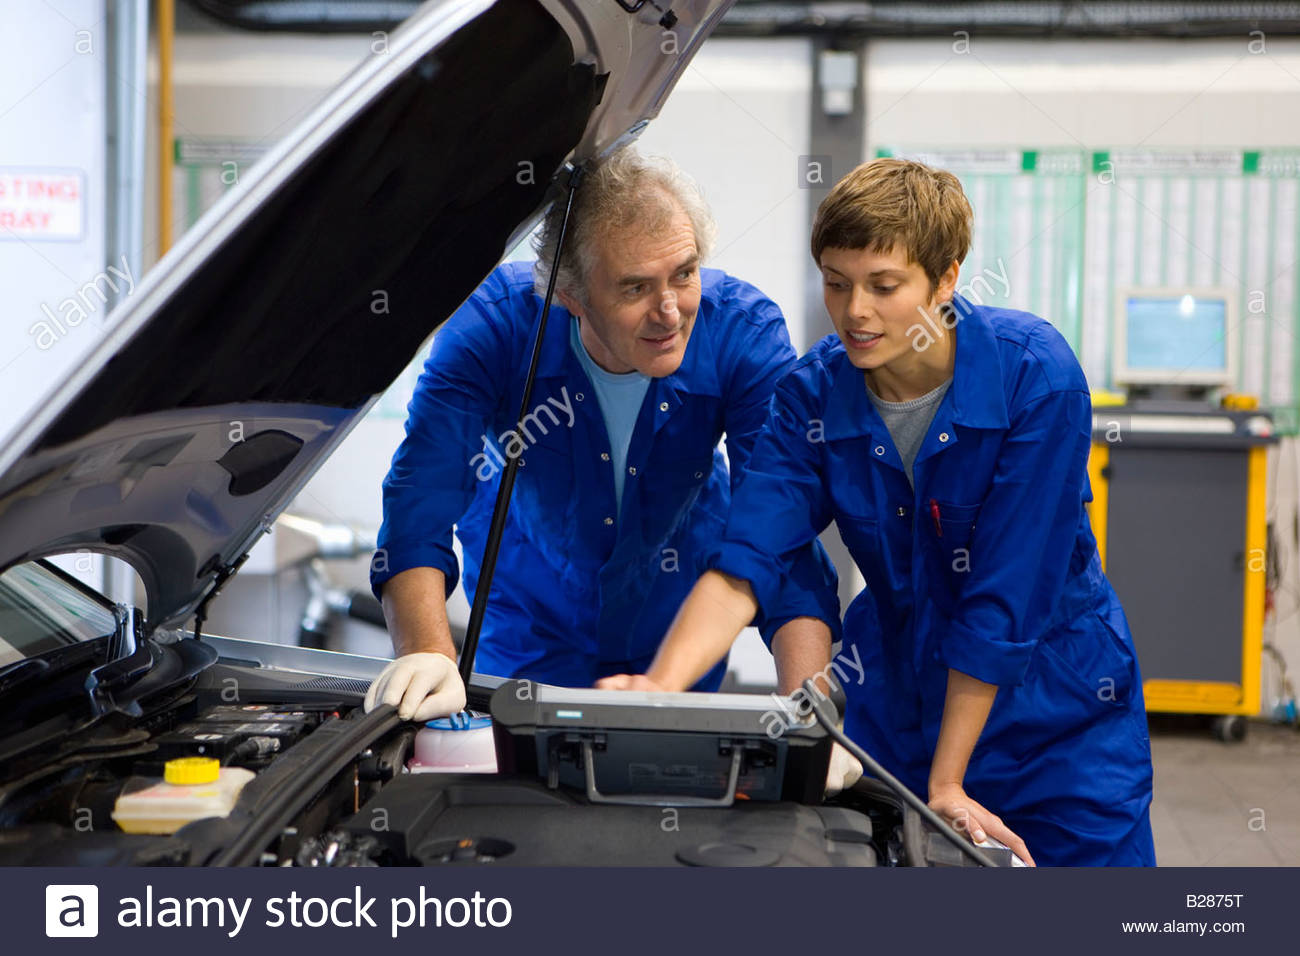 Mechanic and colleague with electronic diagnostics device - Stock Image